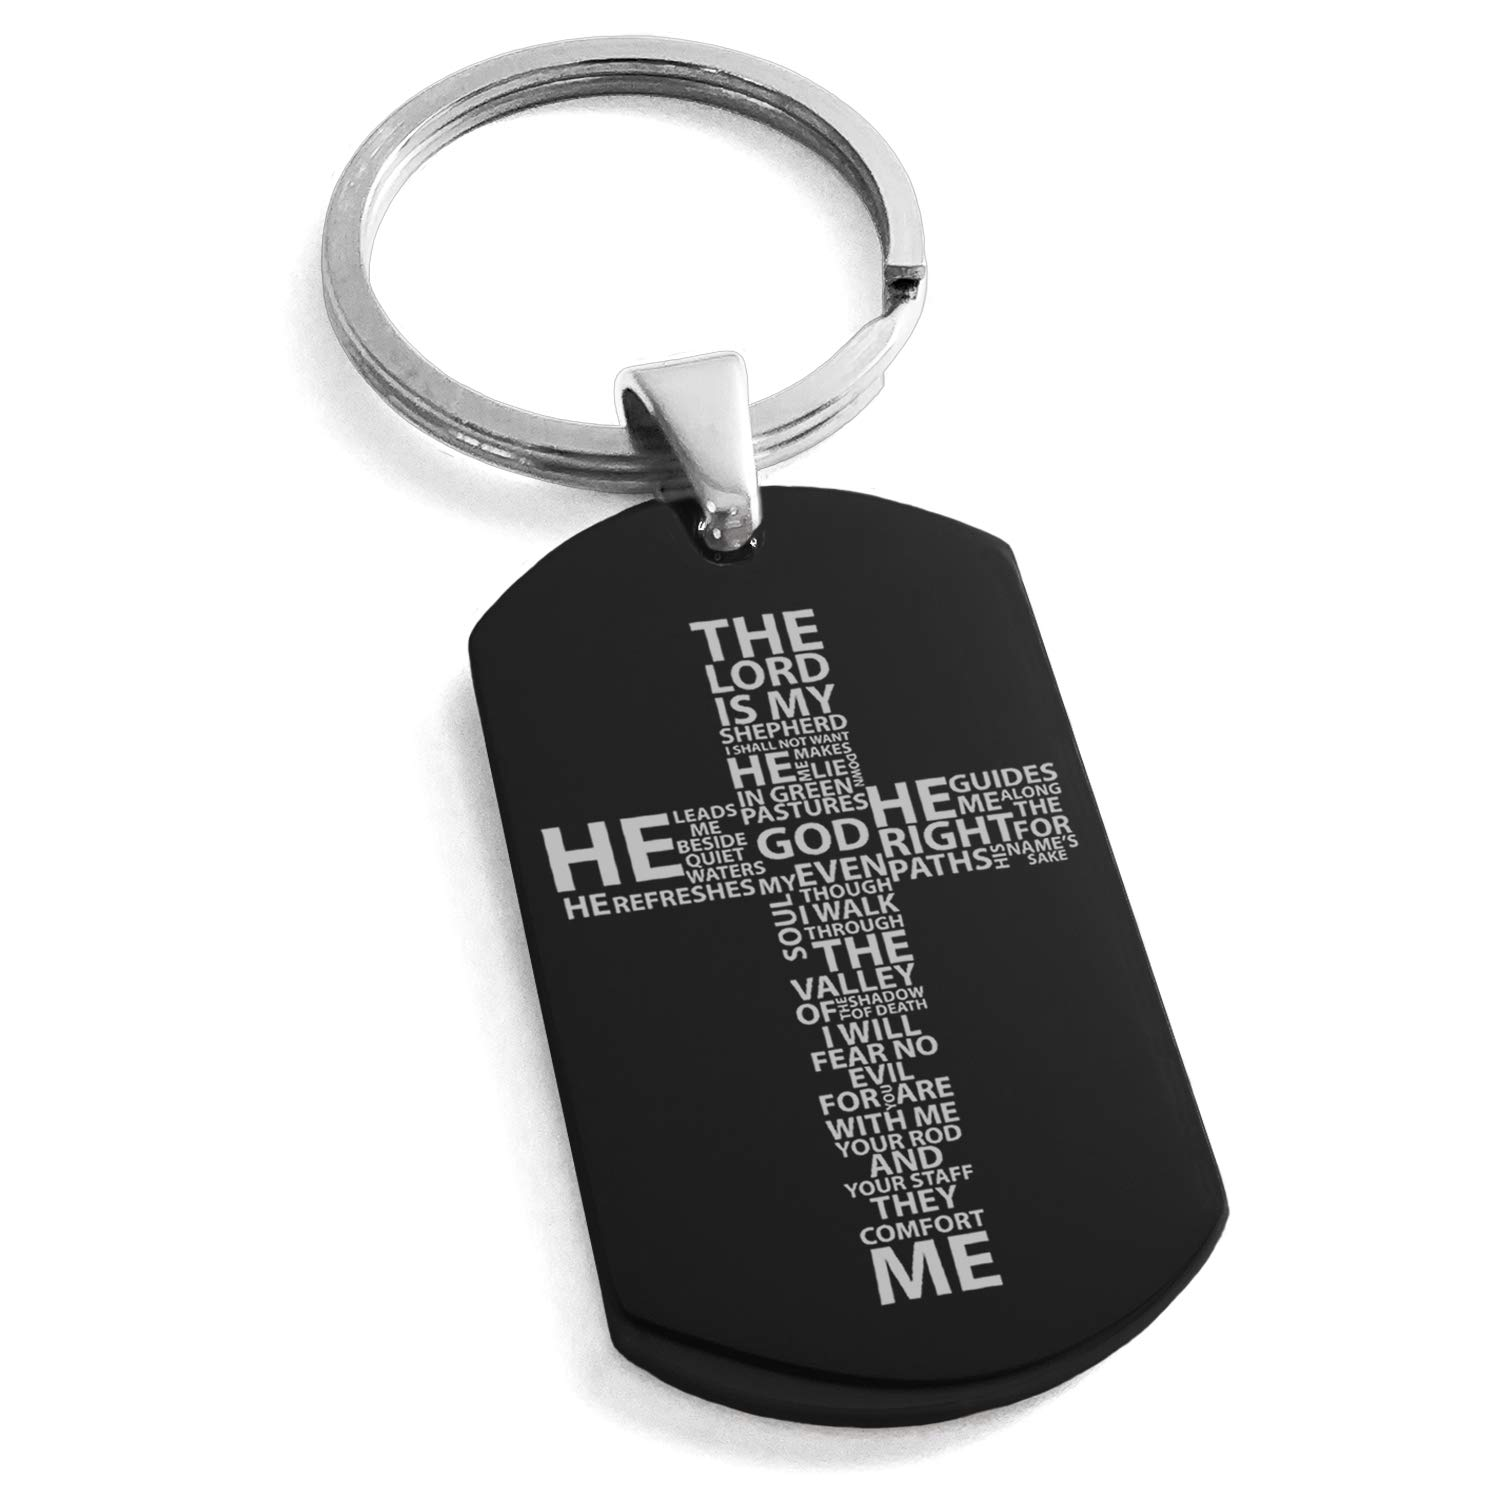 Tioneer Black Stainless Steel The Lord is My Shepherd Psalm 23:1-4 Engraved Dog Tag Keychain Keyring